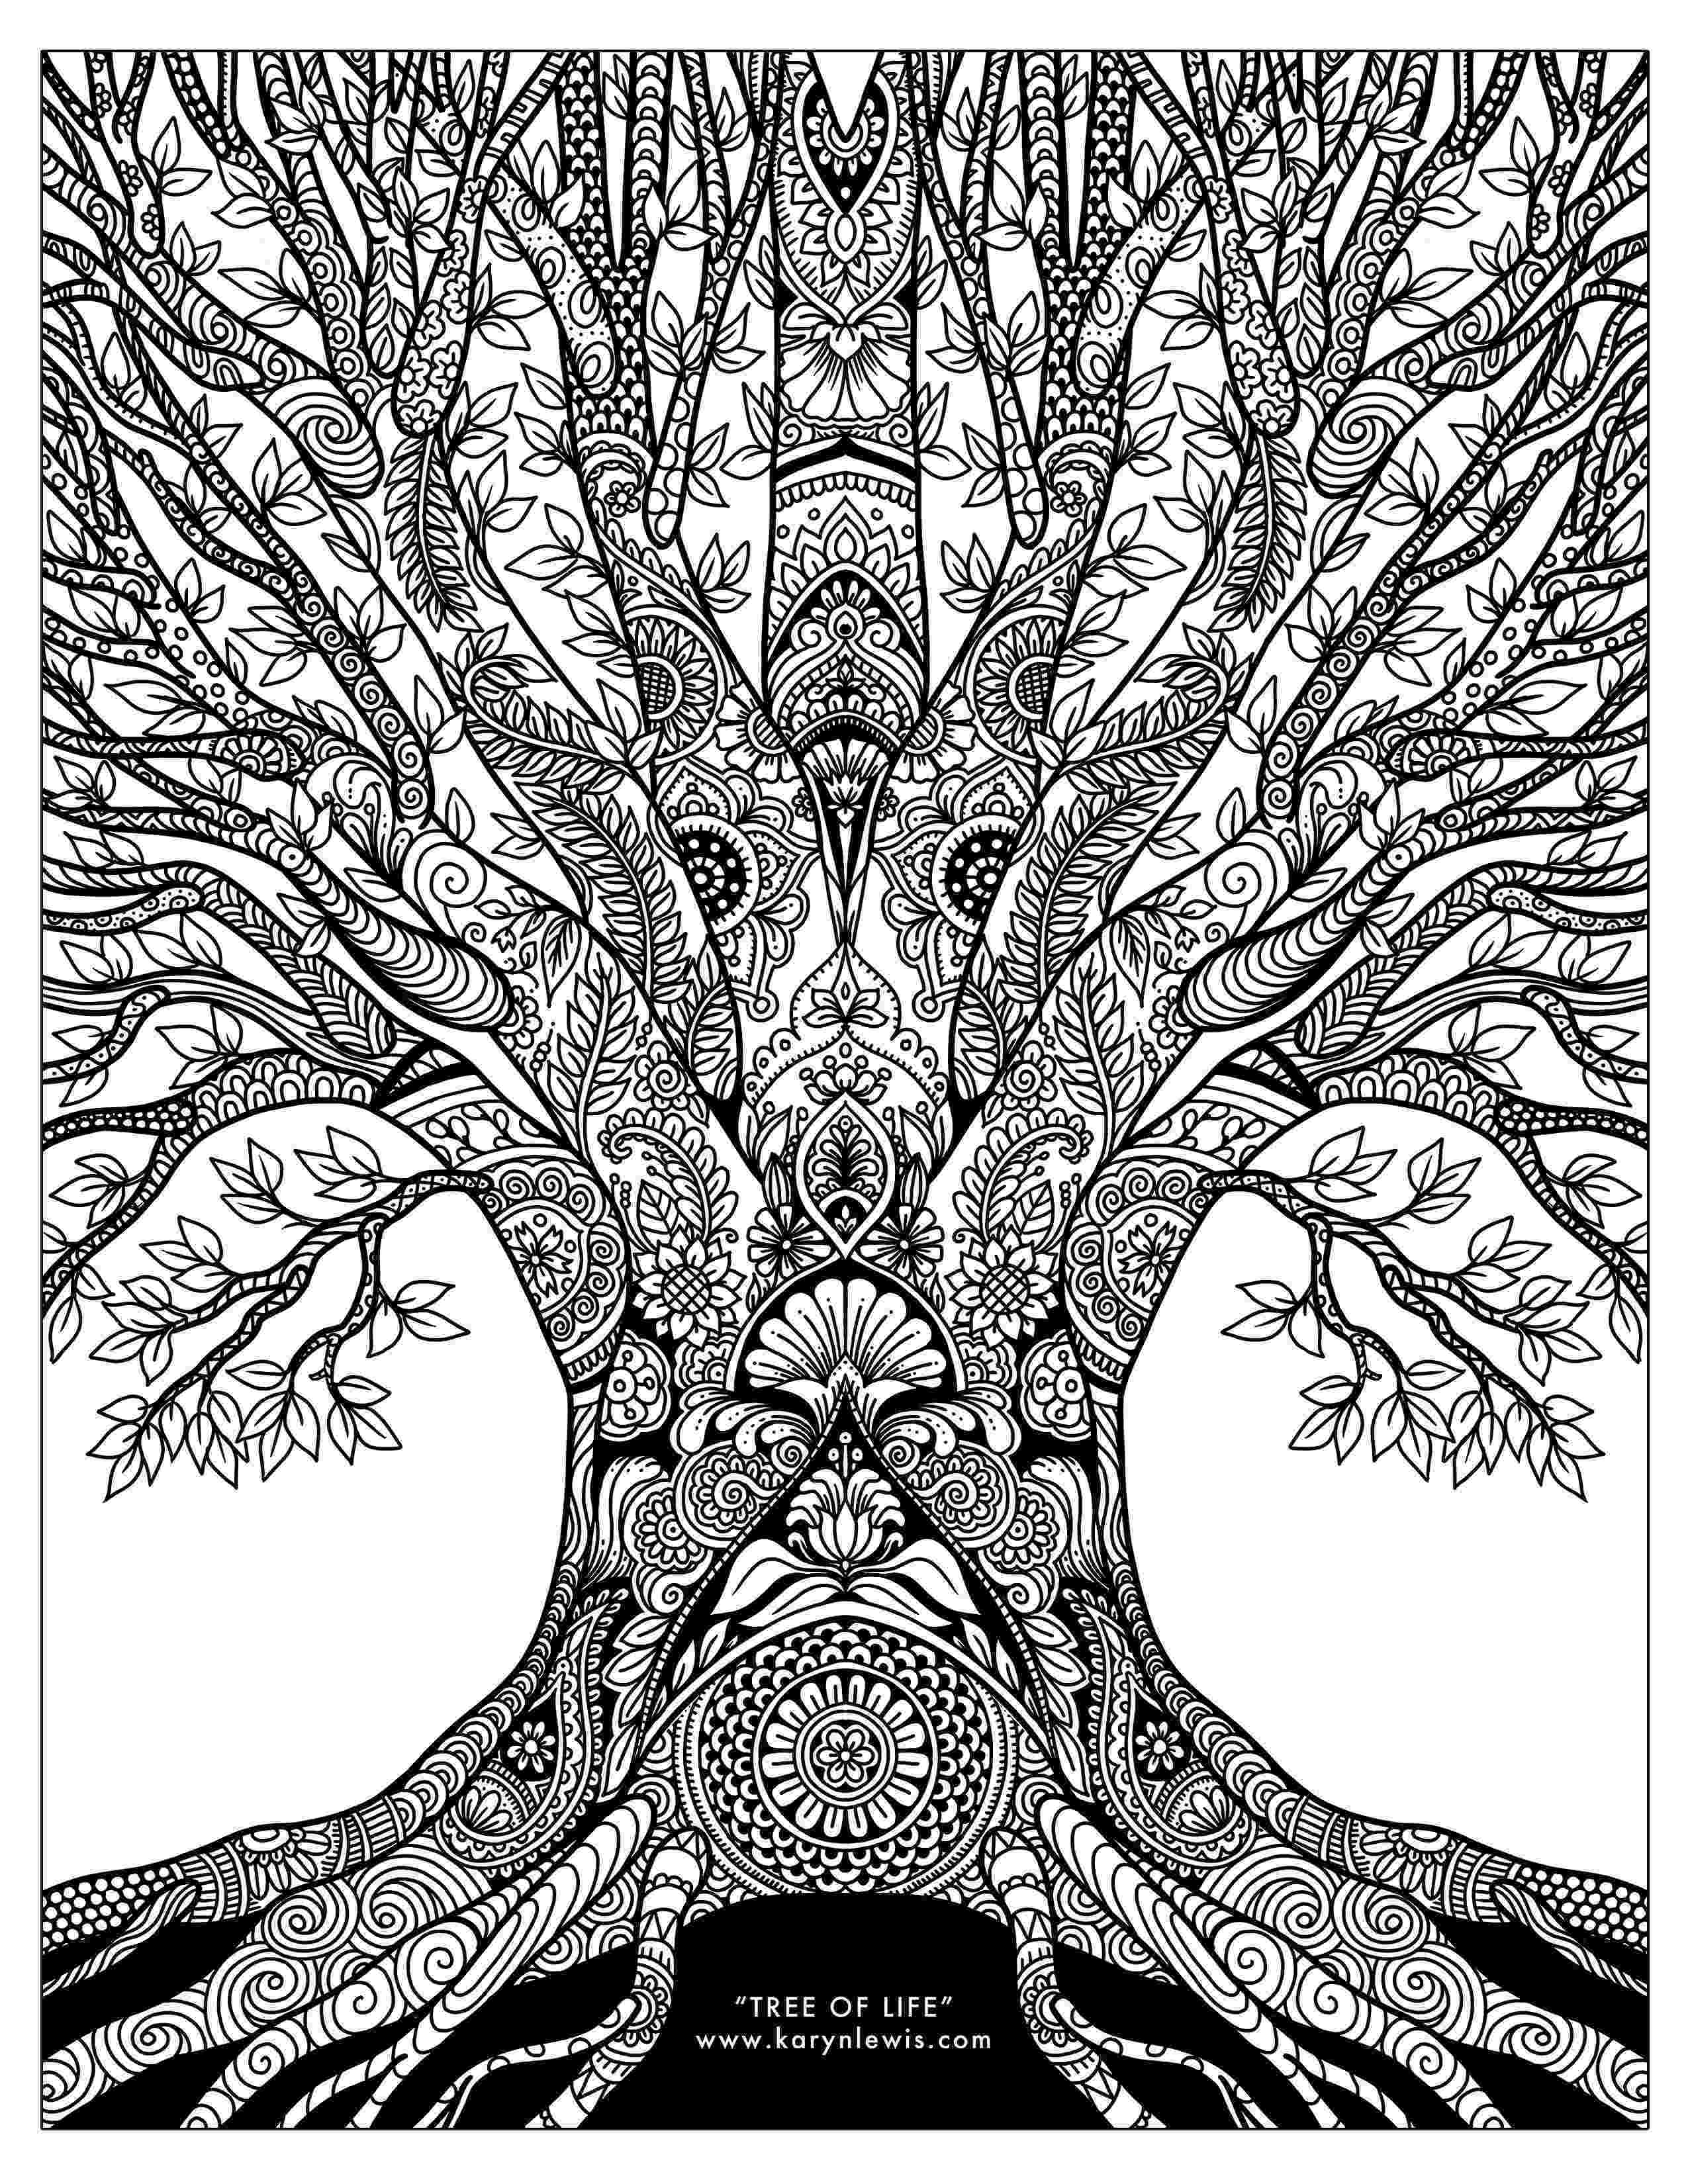 tree of life coloring pages free coloring pages for download karyn lewis illustration of coloring tree life pages